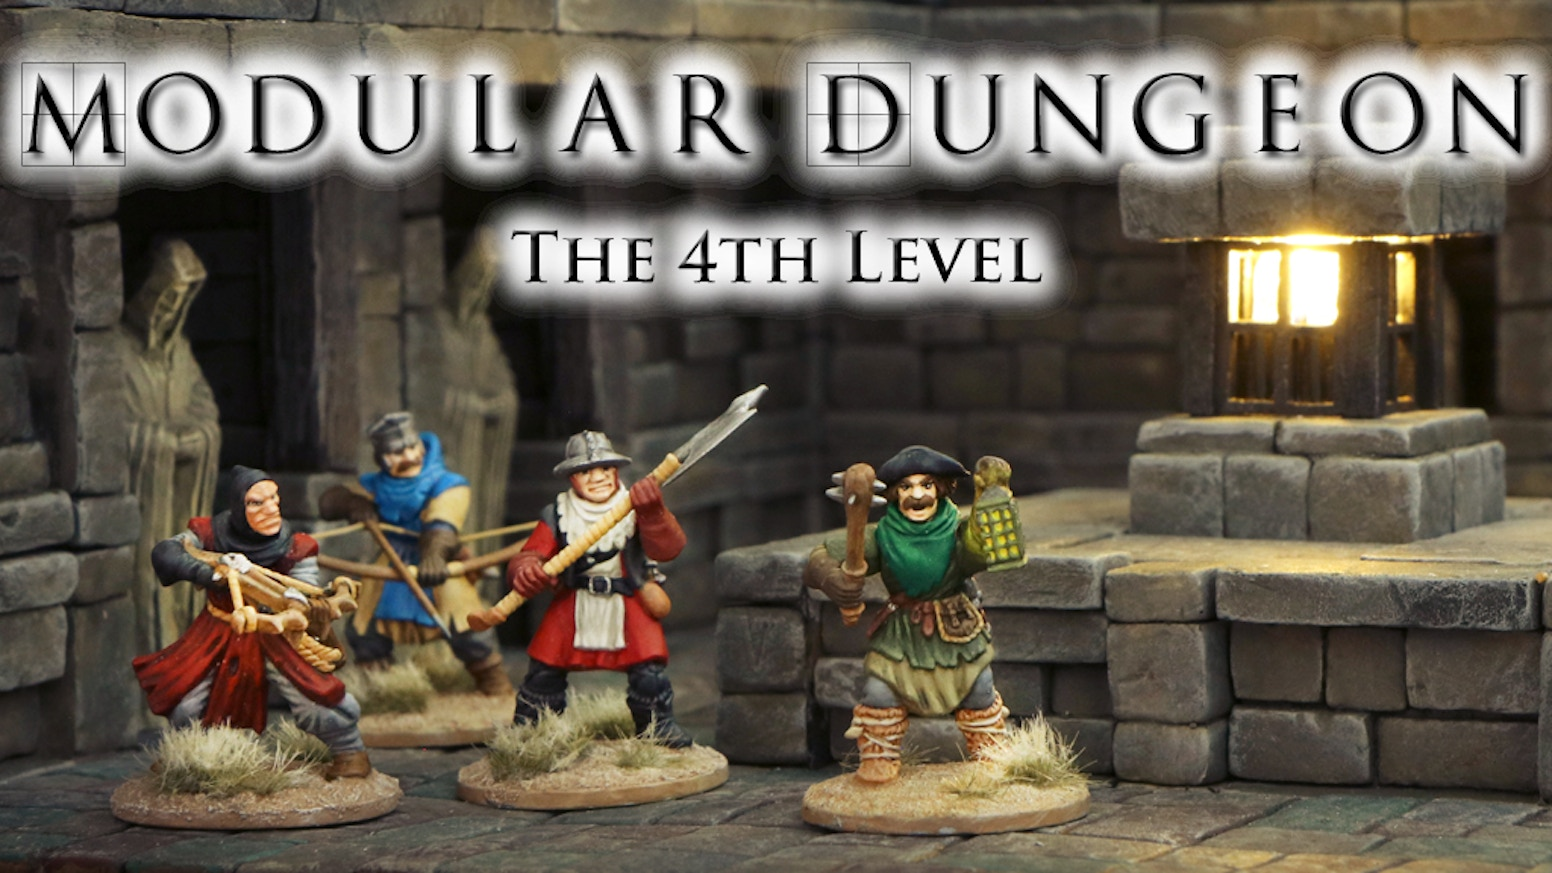 MODULAR DUNGEON is a 3D construction kit to bring all your dungeon ideas to life. Extend them now with more brand-new designed add-ons